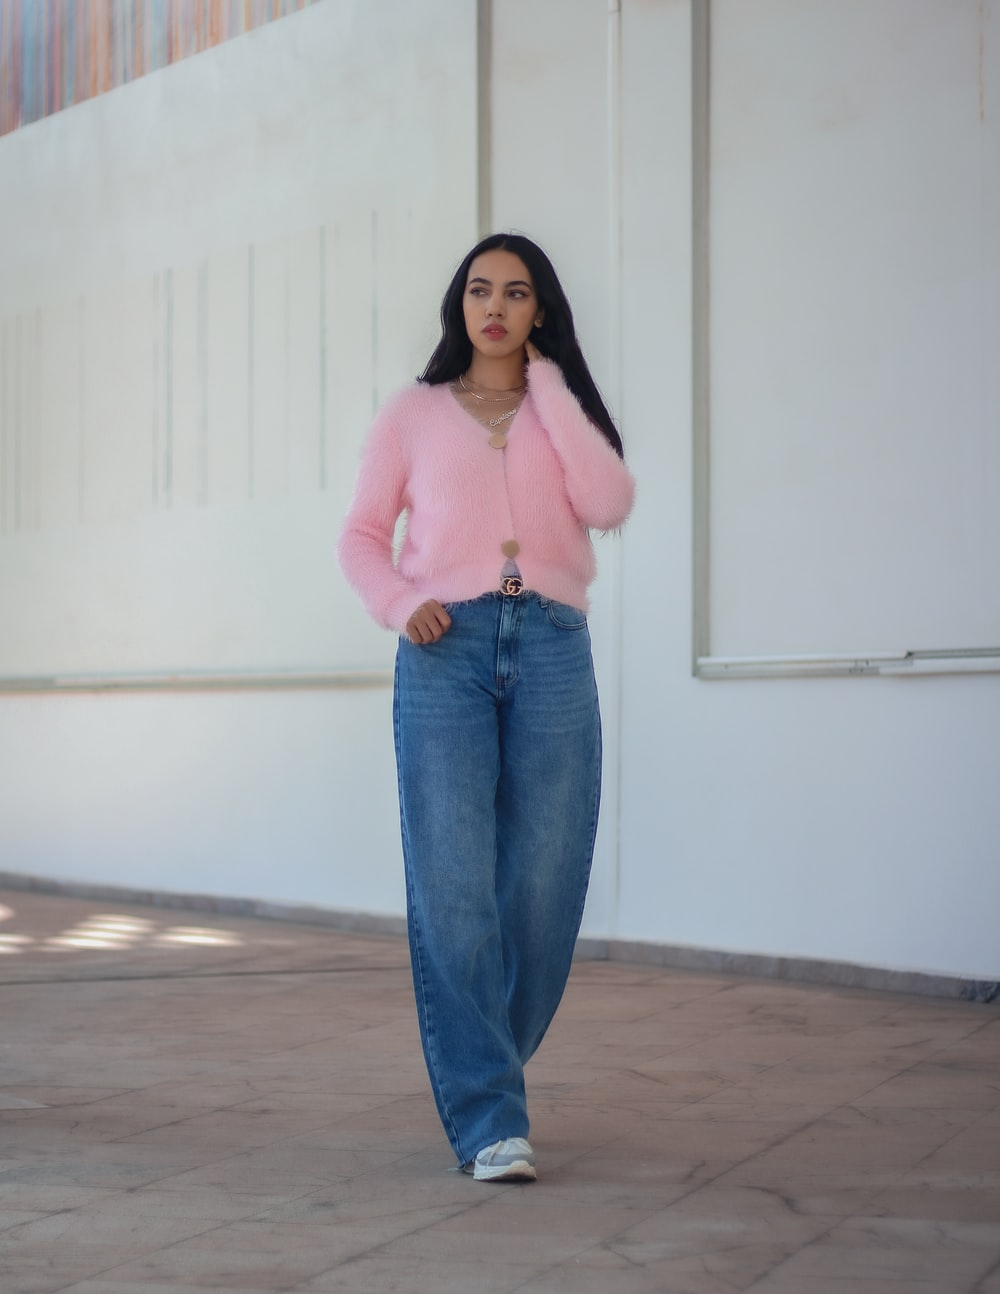 woman in pink long sleeve shirt and blue denim jeans standing near white wall